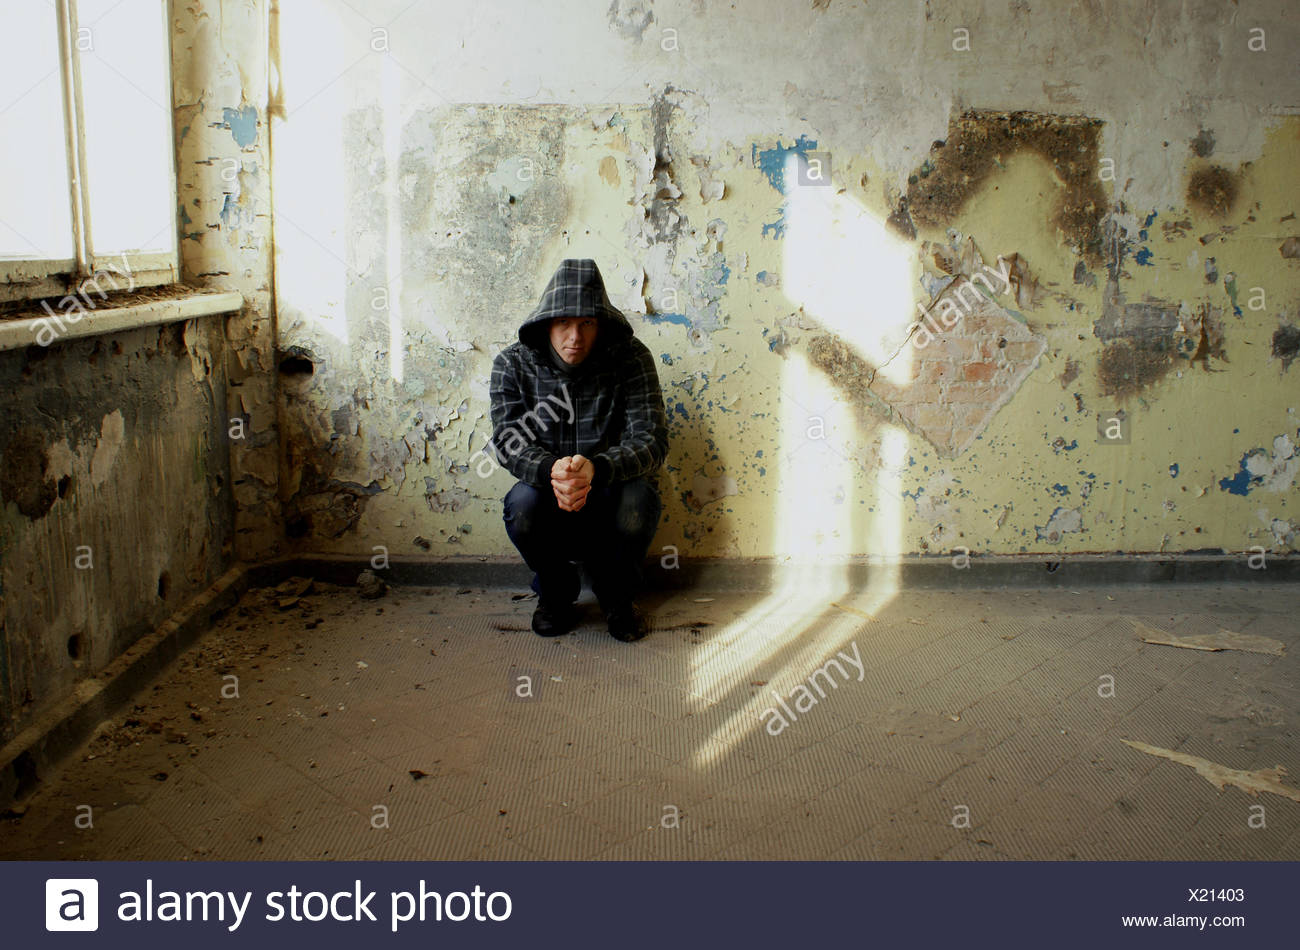 solitude,loneliness,young man,crouch - Stock Image